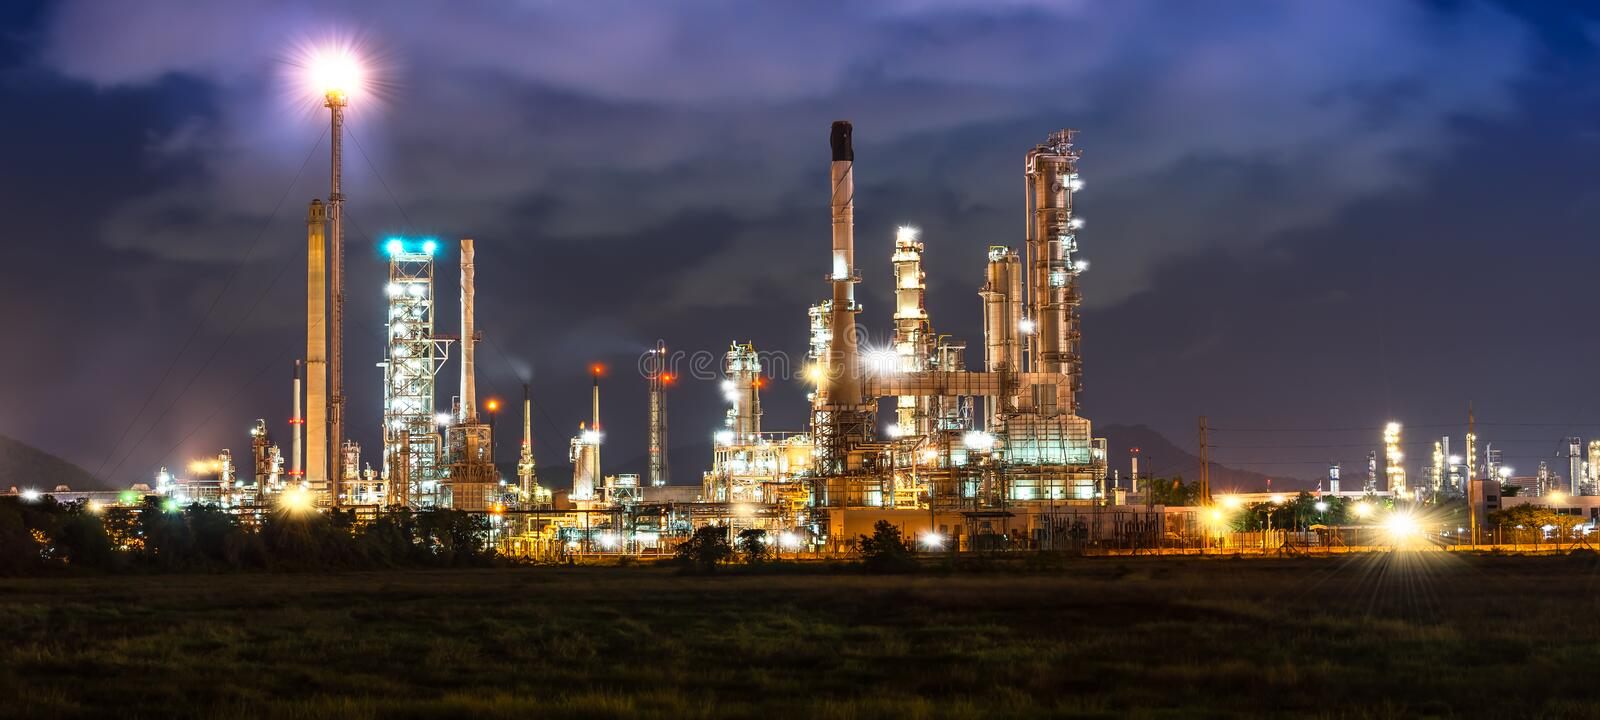 Oil refinery in night time stock photography